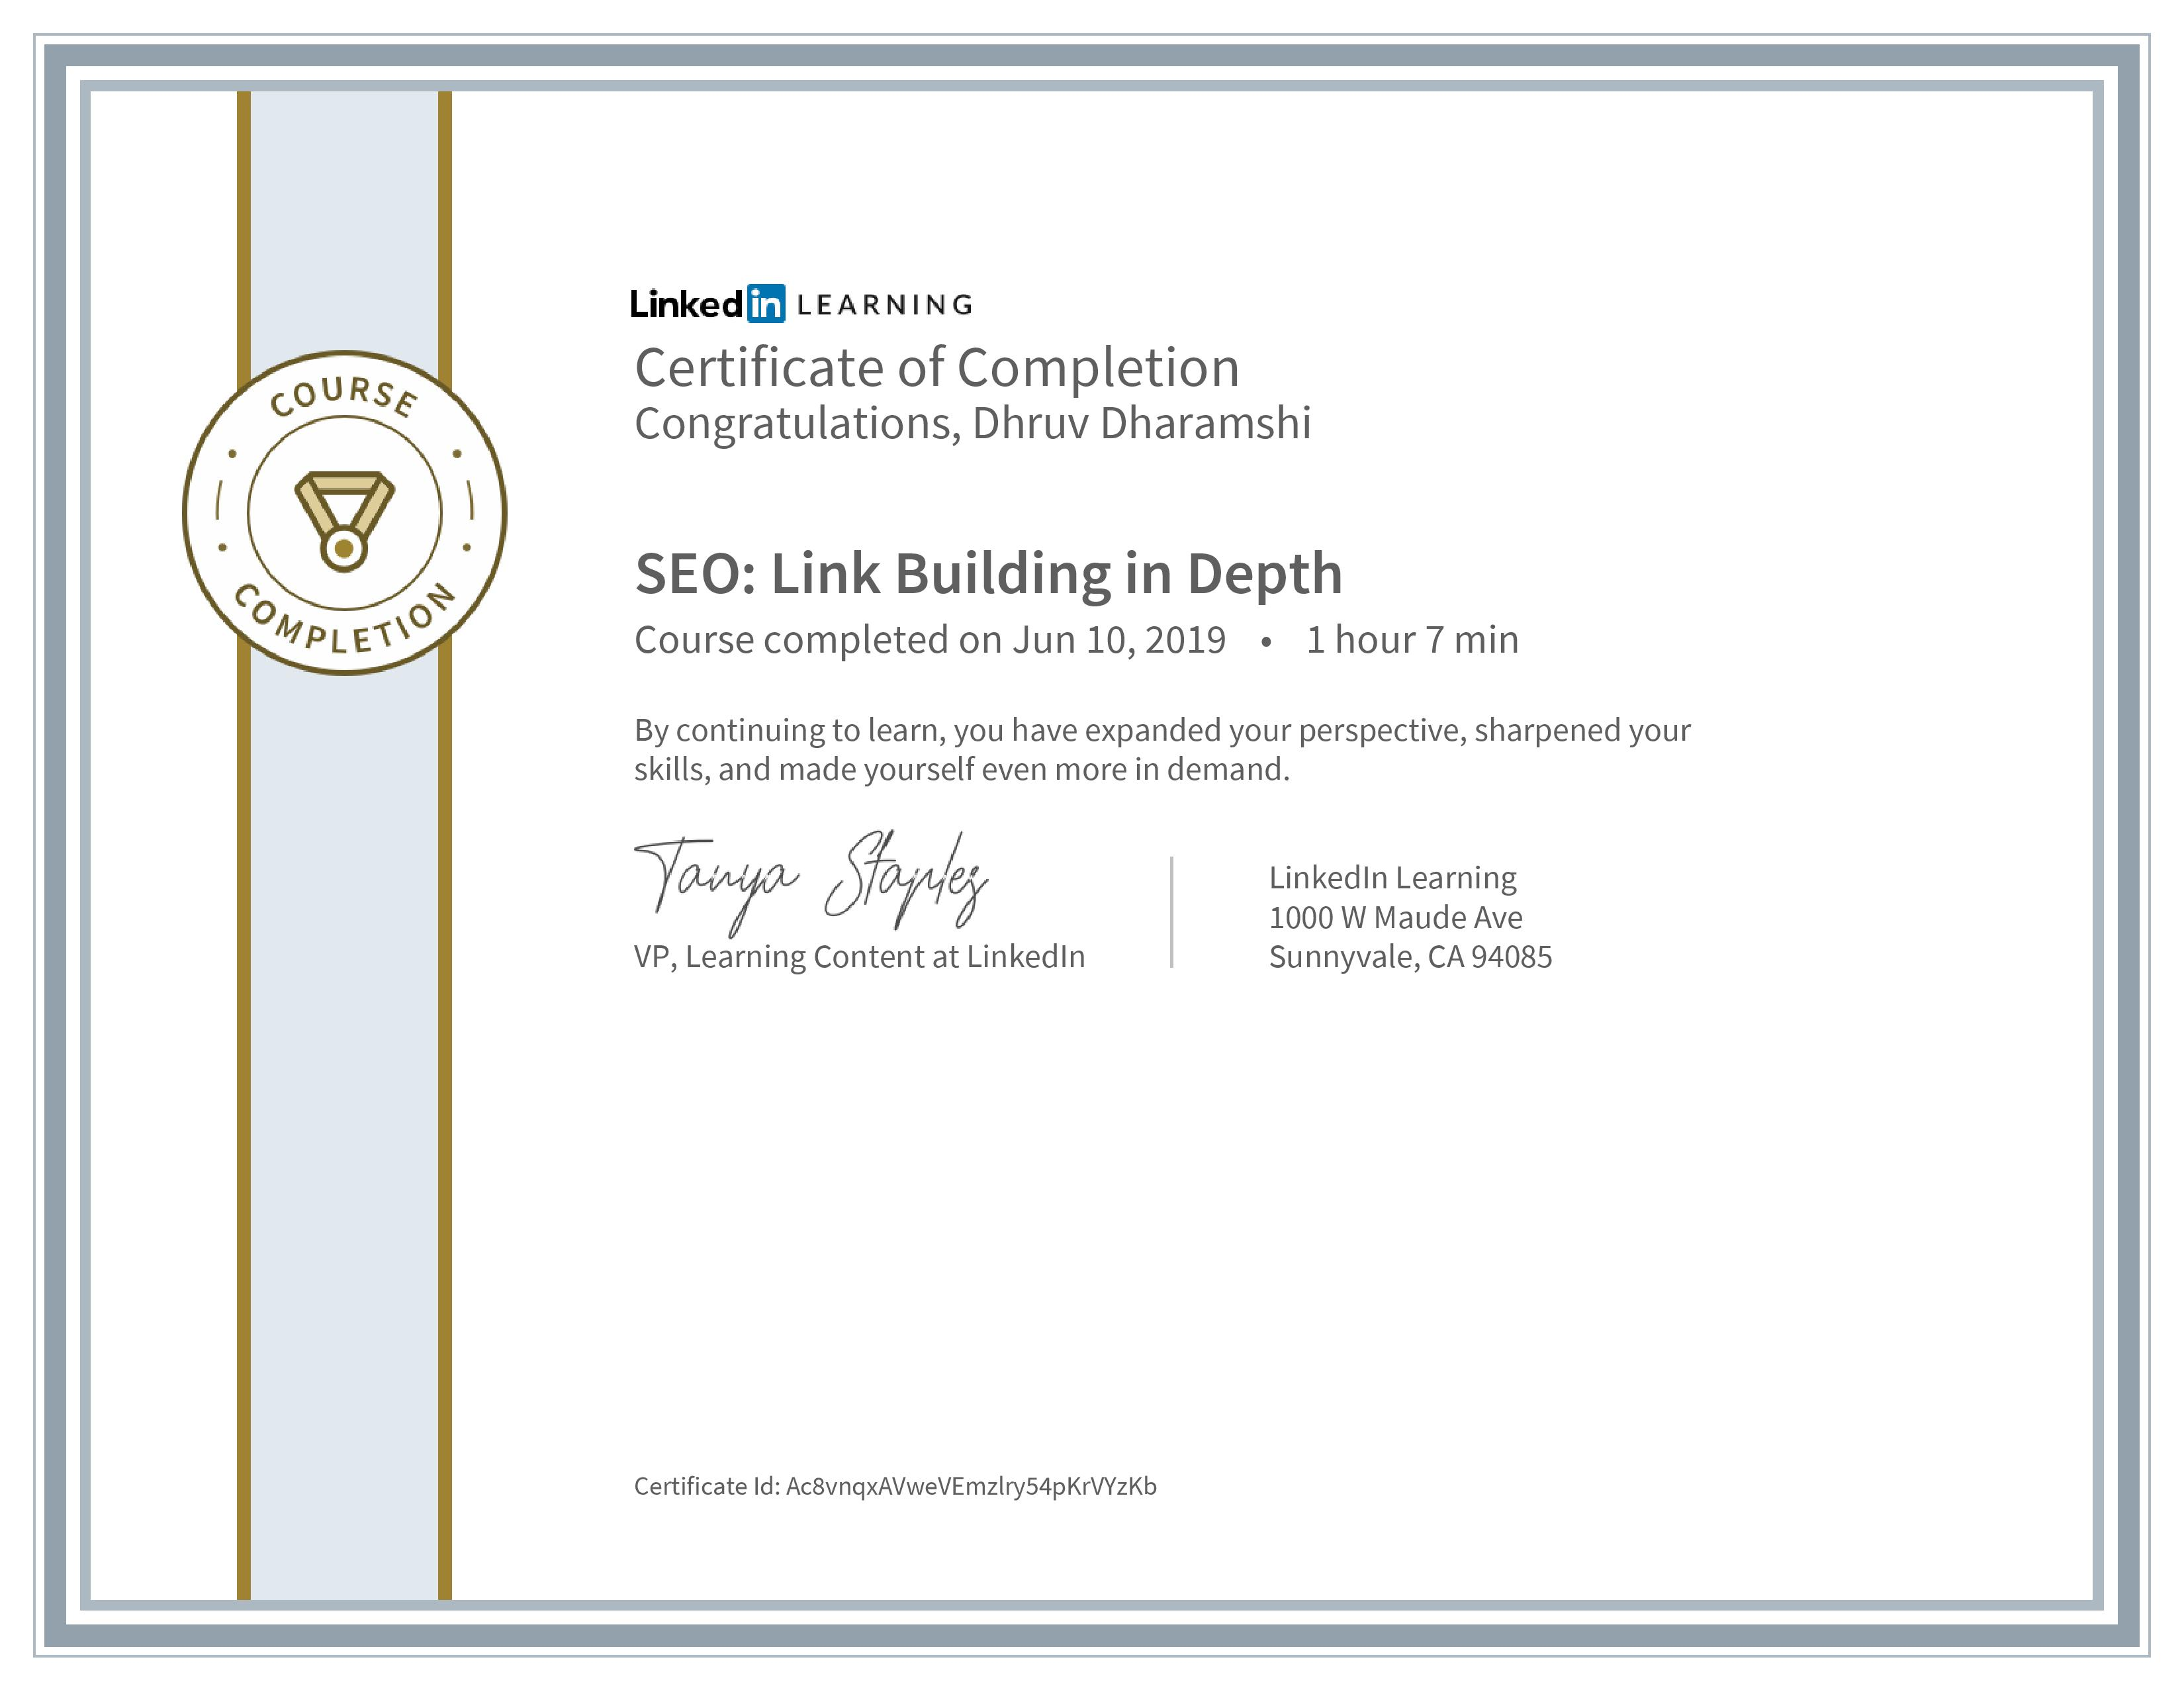 SEO: Link Building in Depth